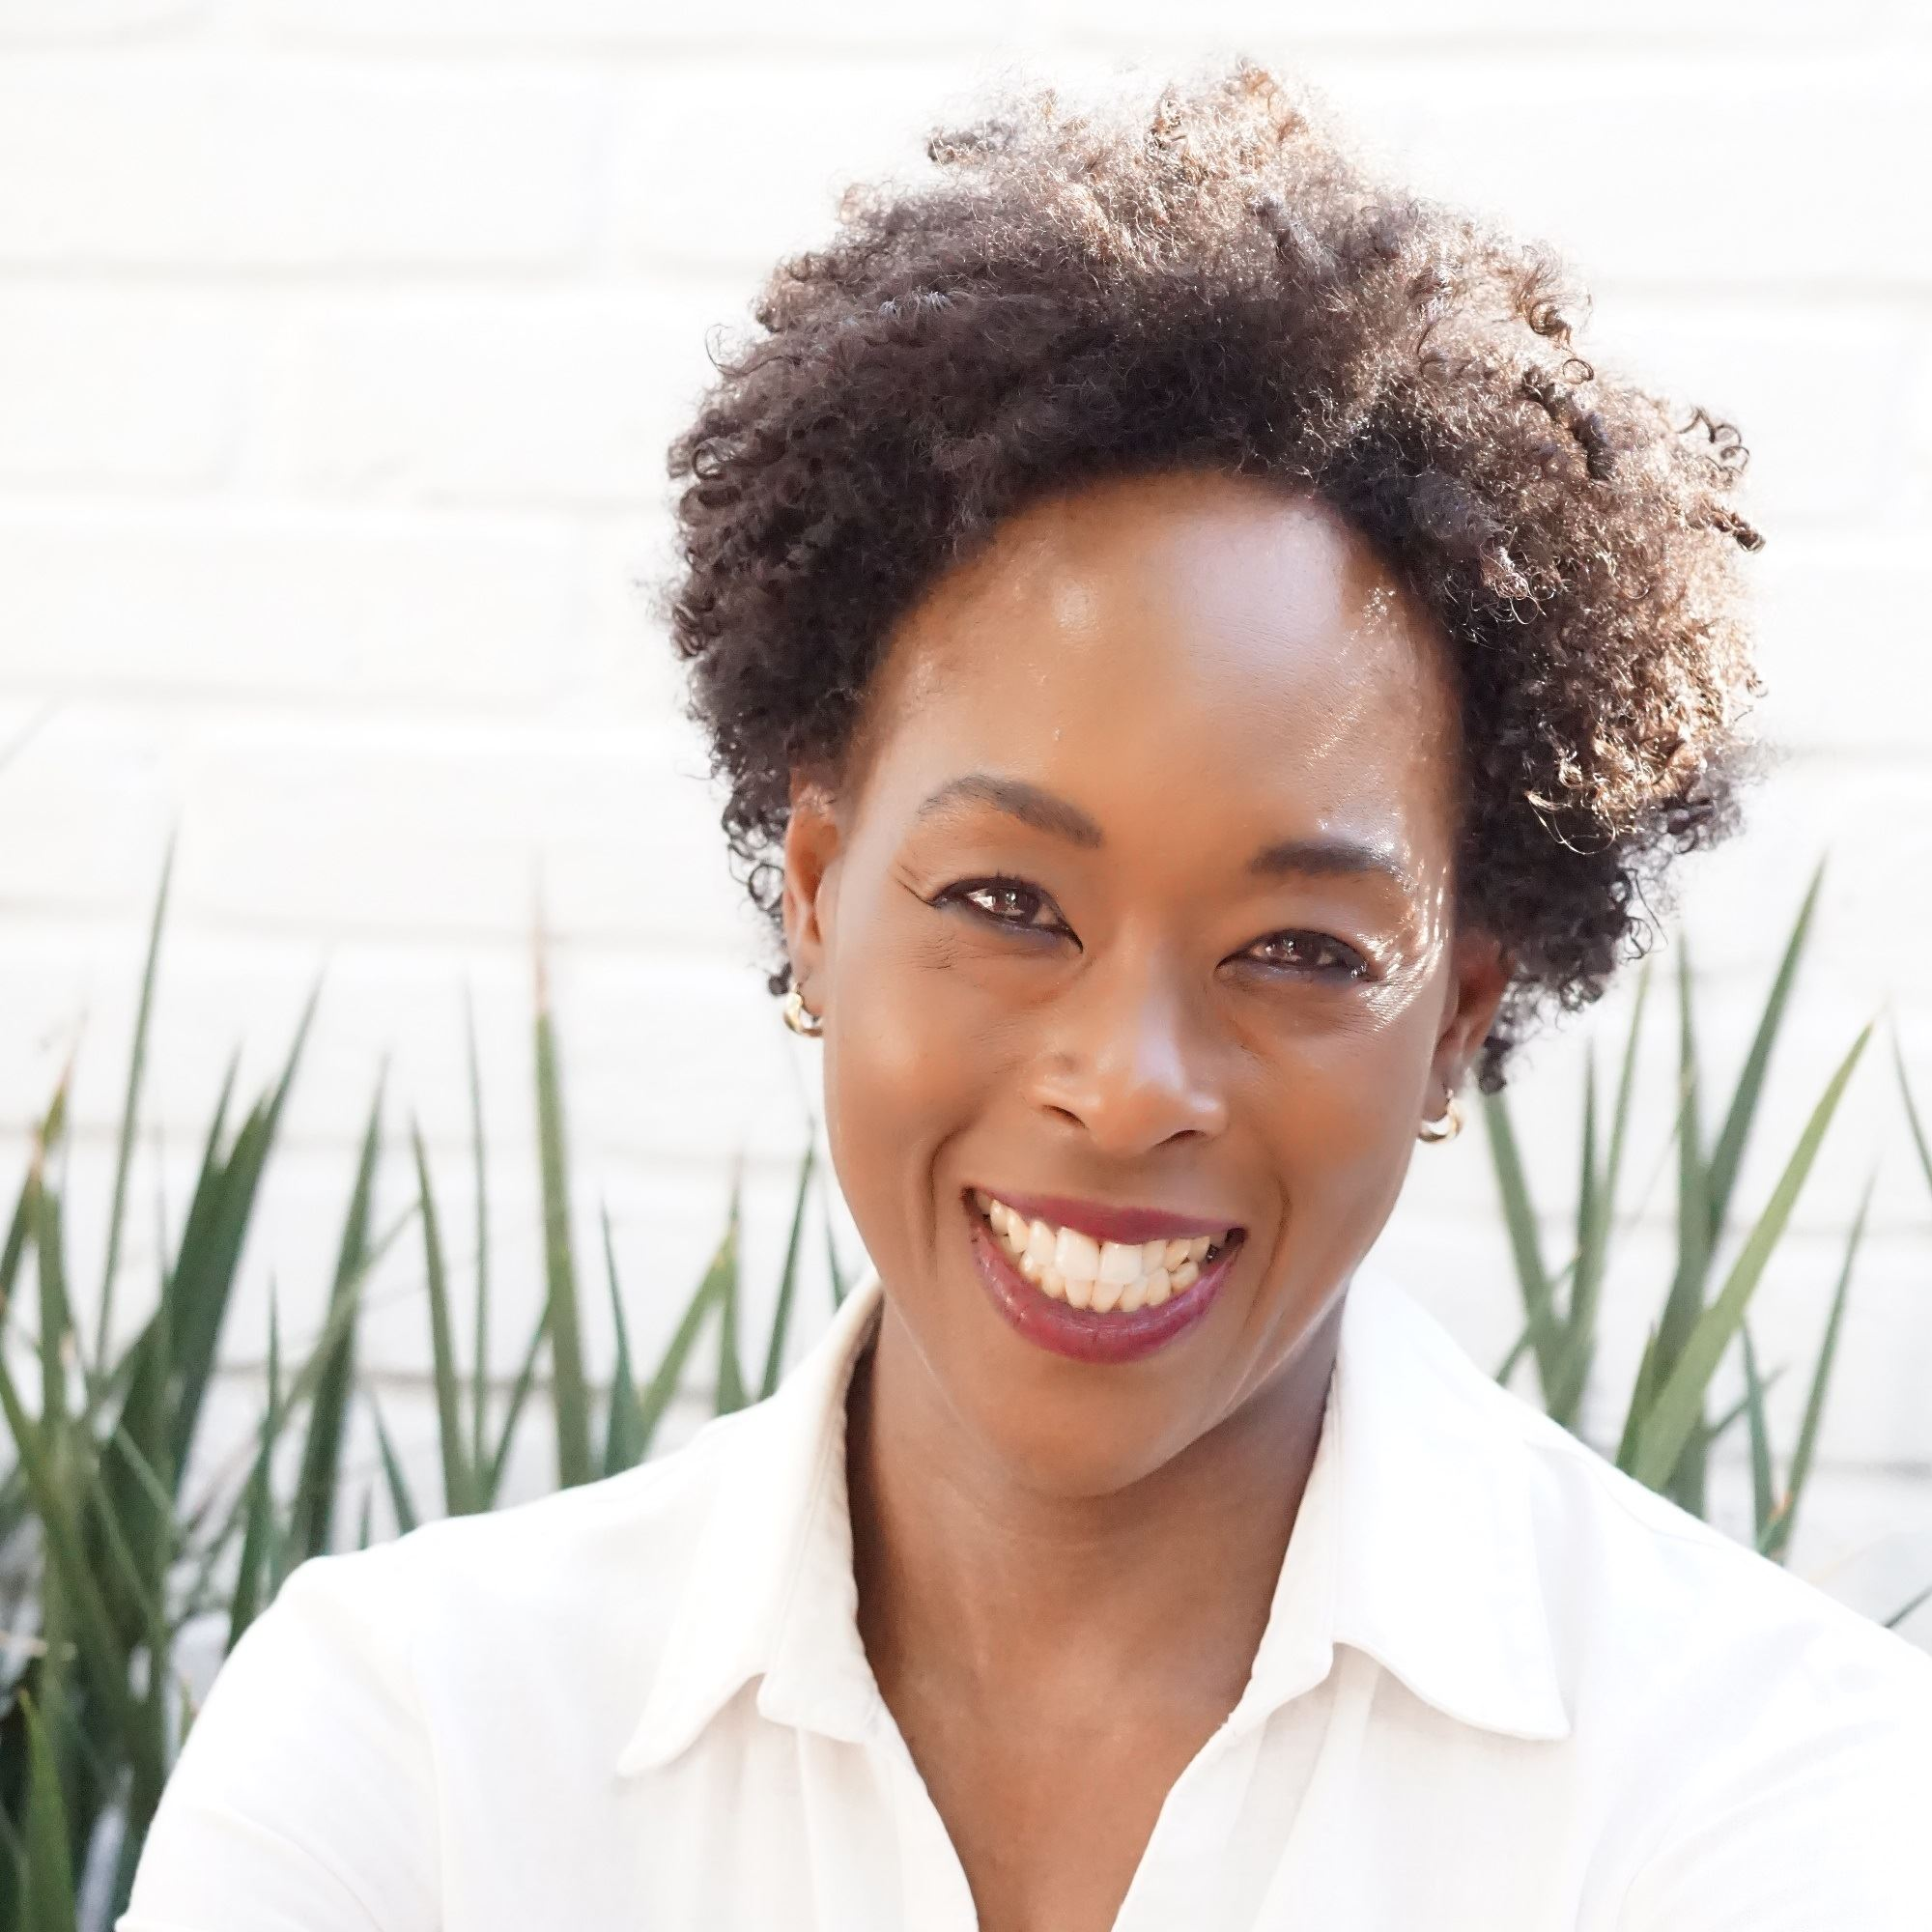 SQUARE Margot Shetterly Author Photo credit Aran Shetterly